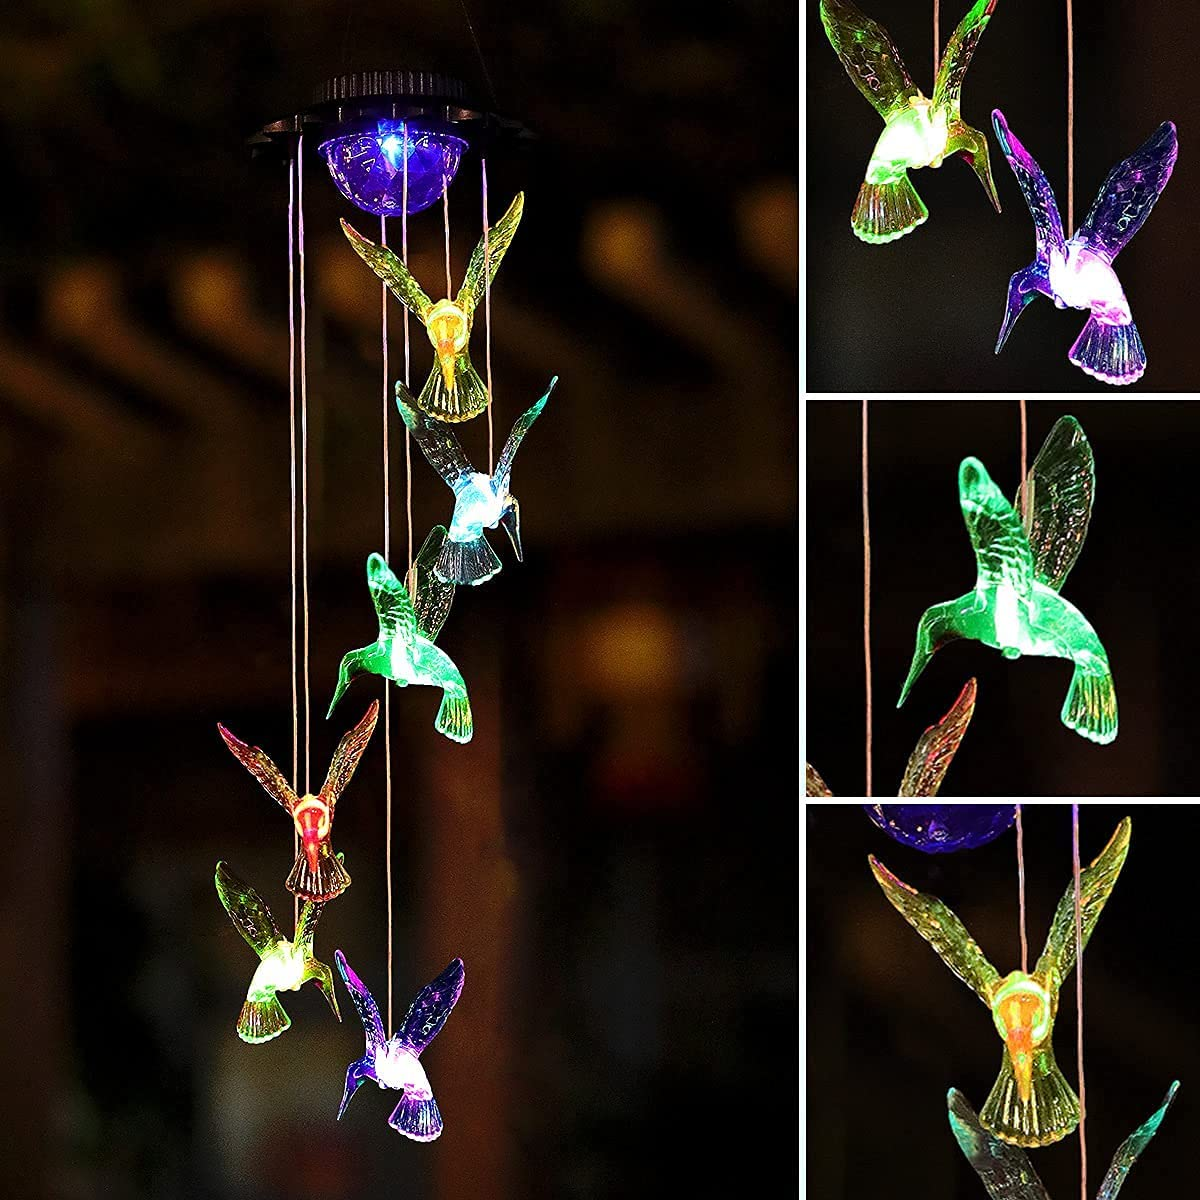 Suimeite Solar Hummingbird Wind Chimes,Color Changing Outdoor Hanging Decorative for Home Party Yard Garden,Gifts for Mom Birthday (1 Pack)